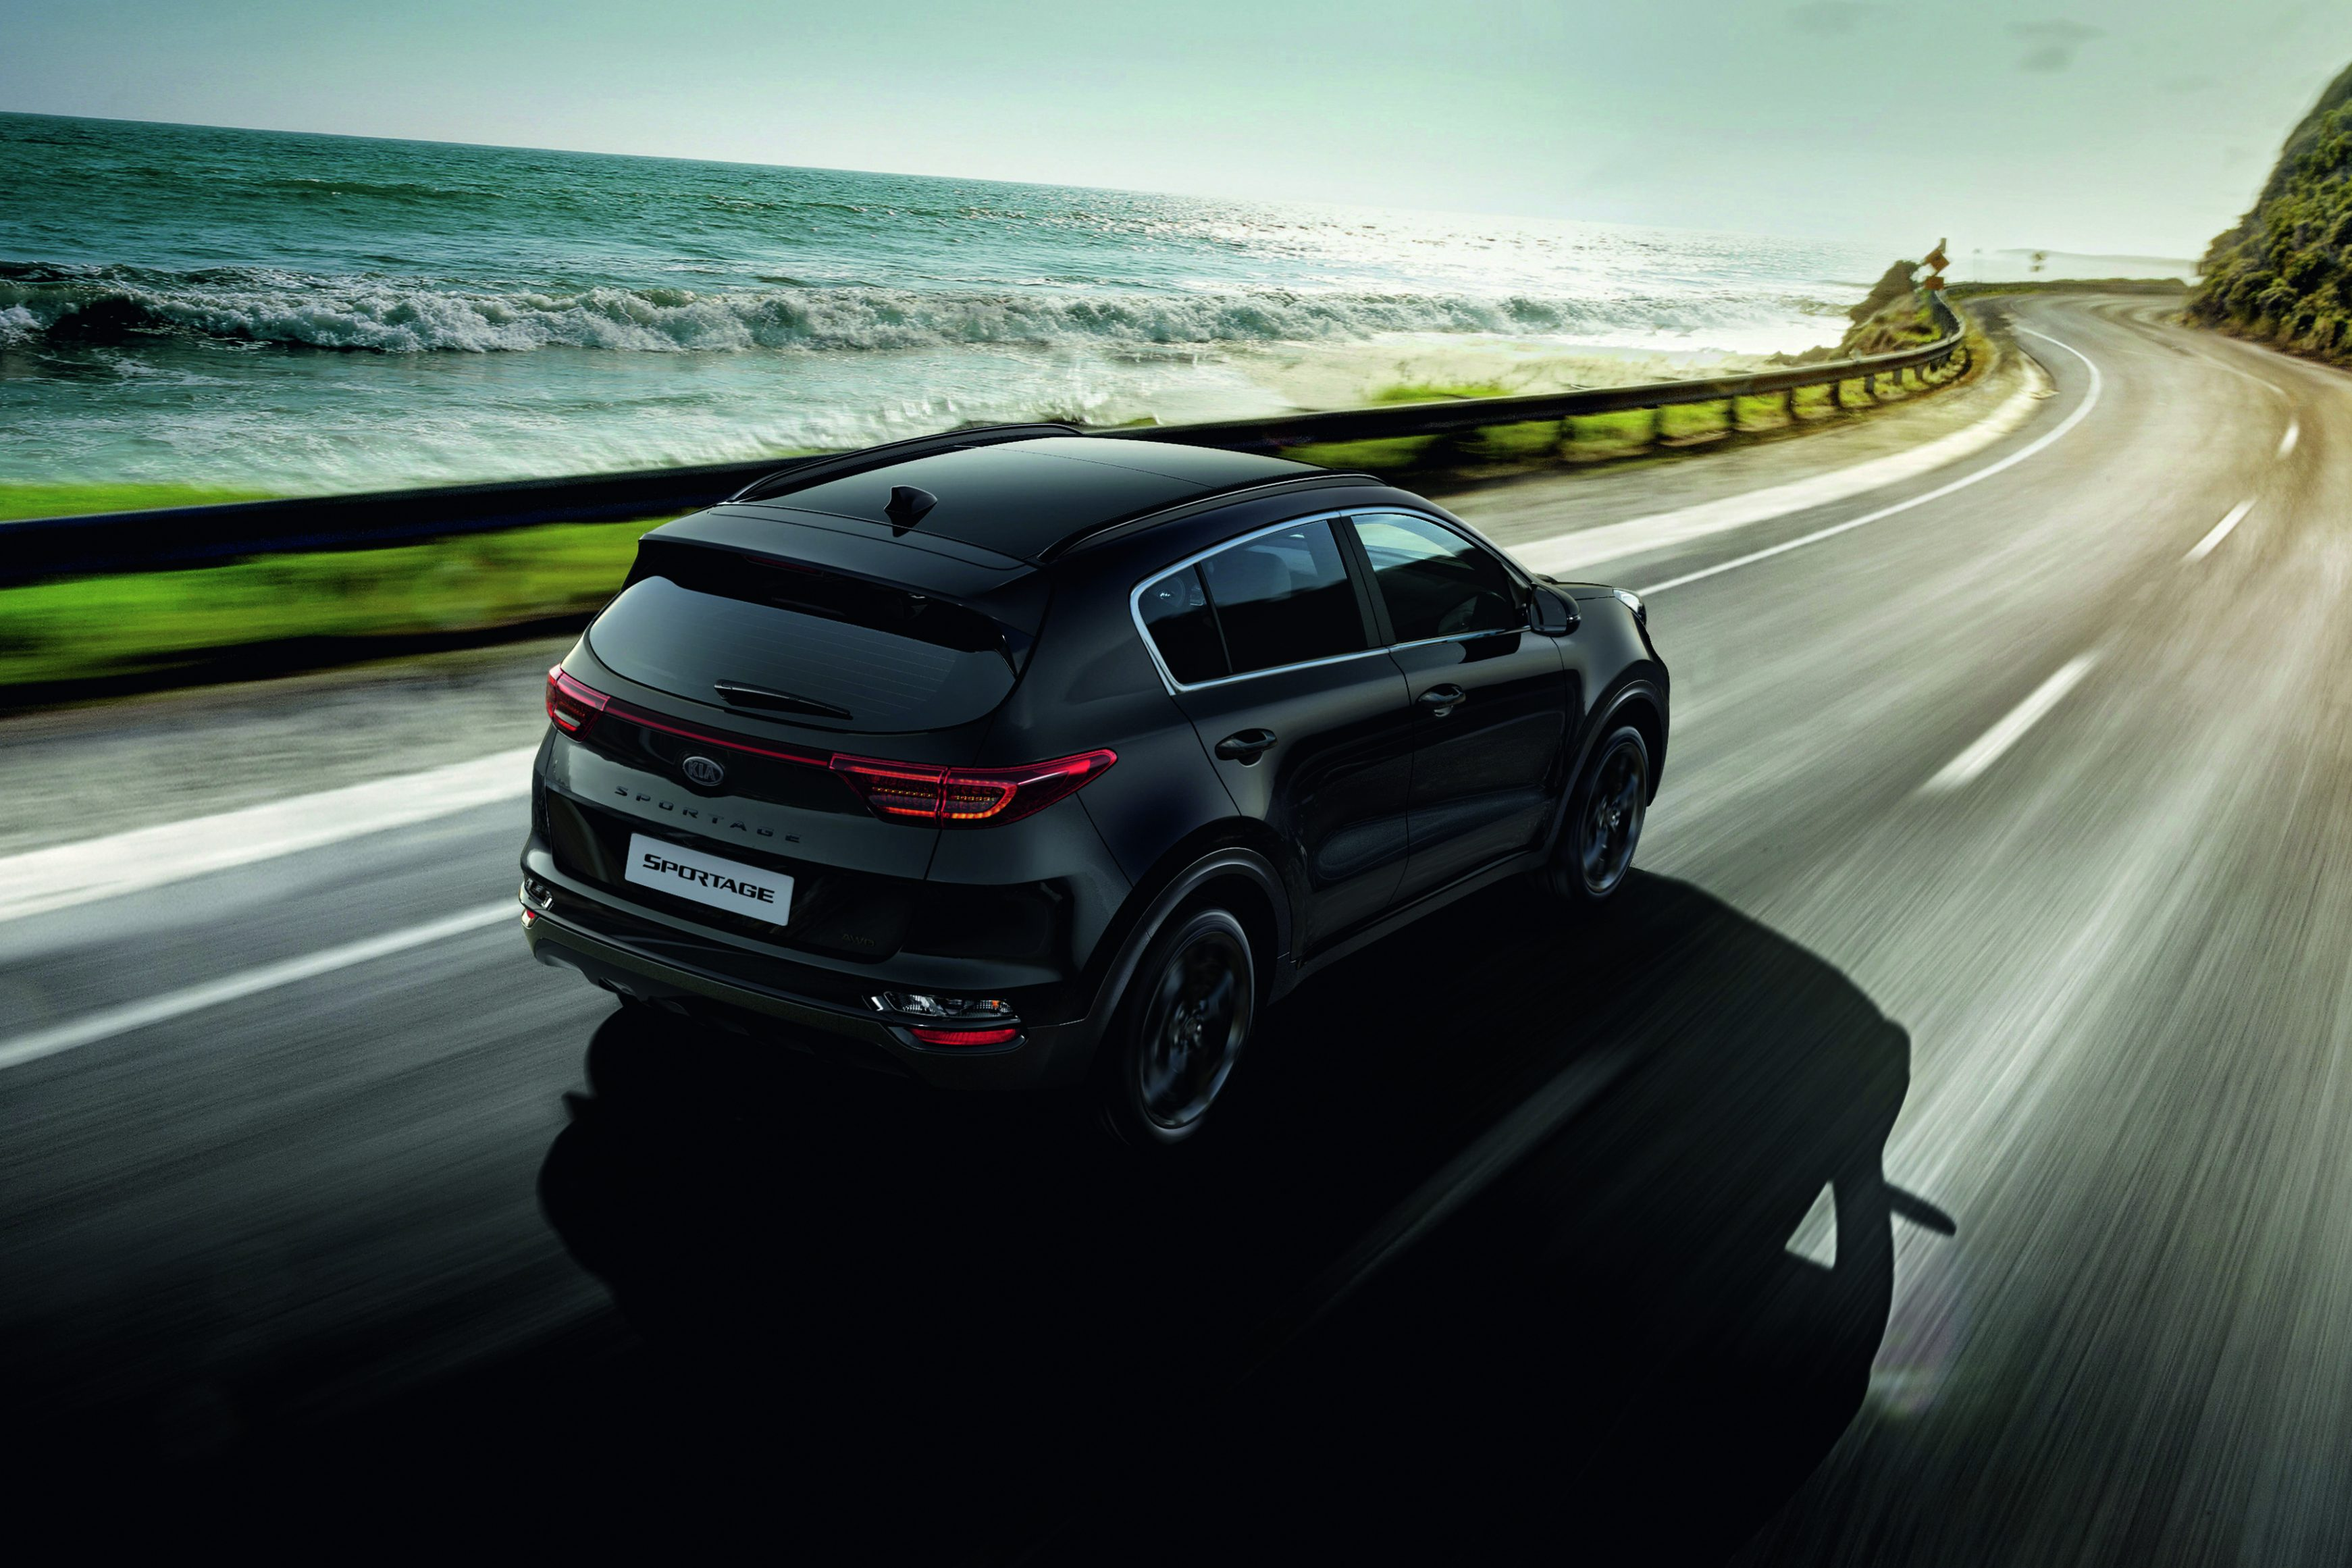 Kia Sportage JBL Black Edition 4